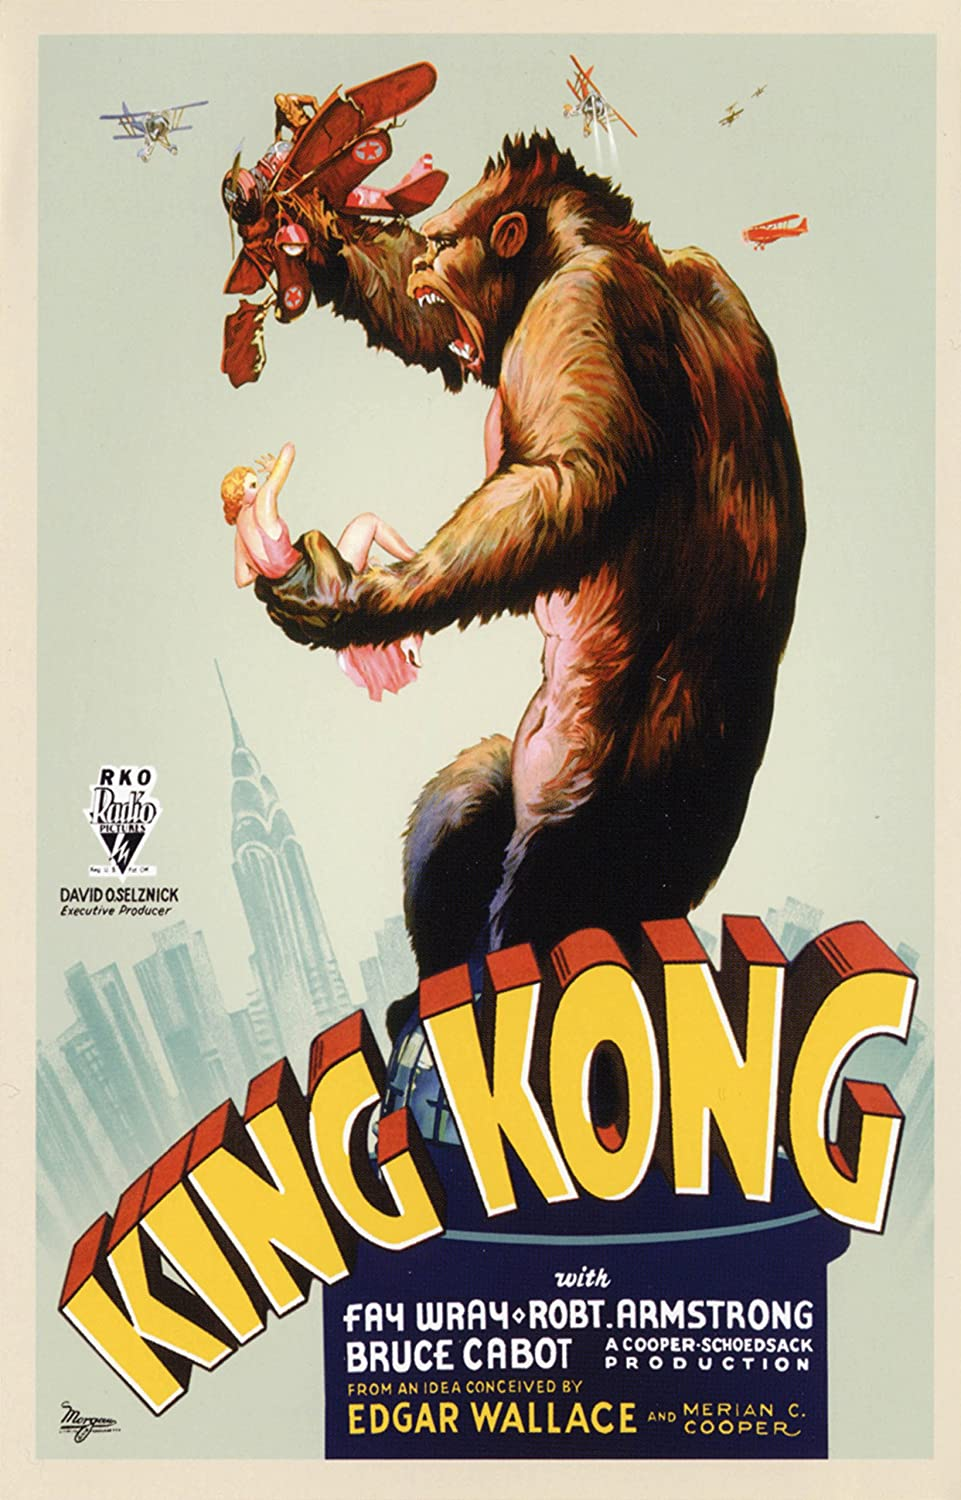 Amazon.com: Movie Posters King Kong (1933) 24x36 inches: Posters & Prints